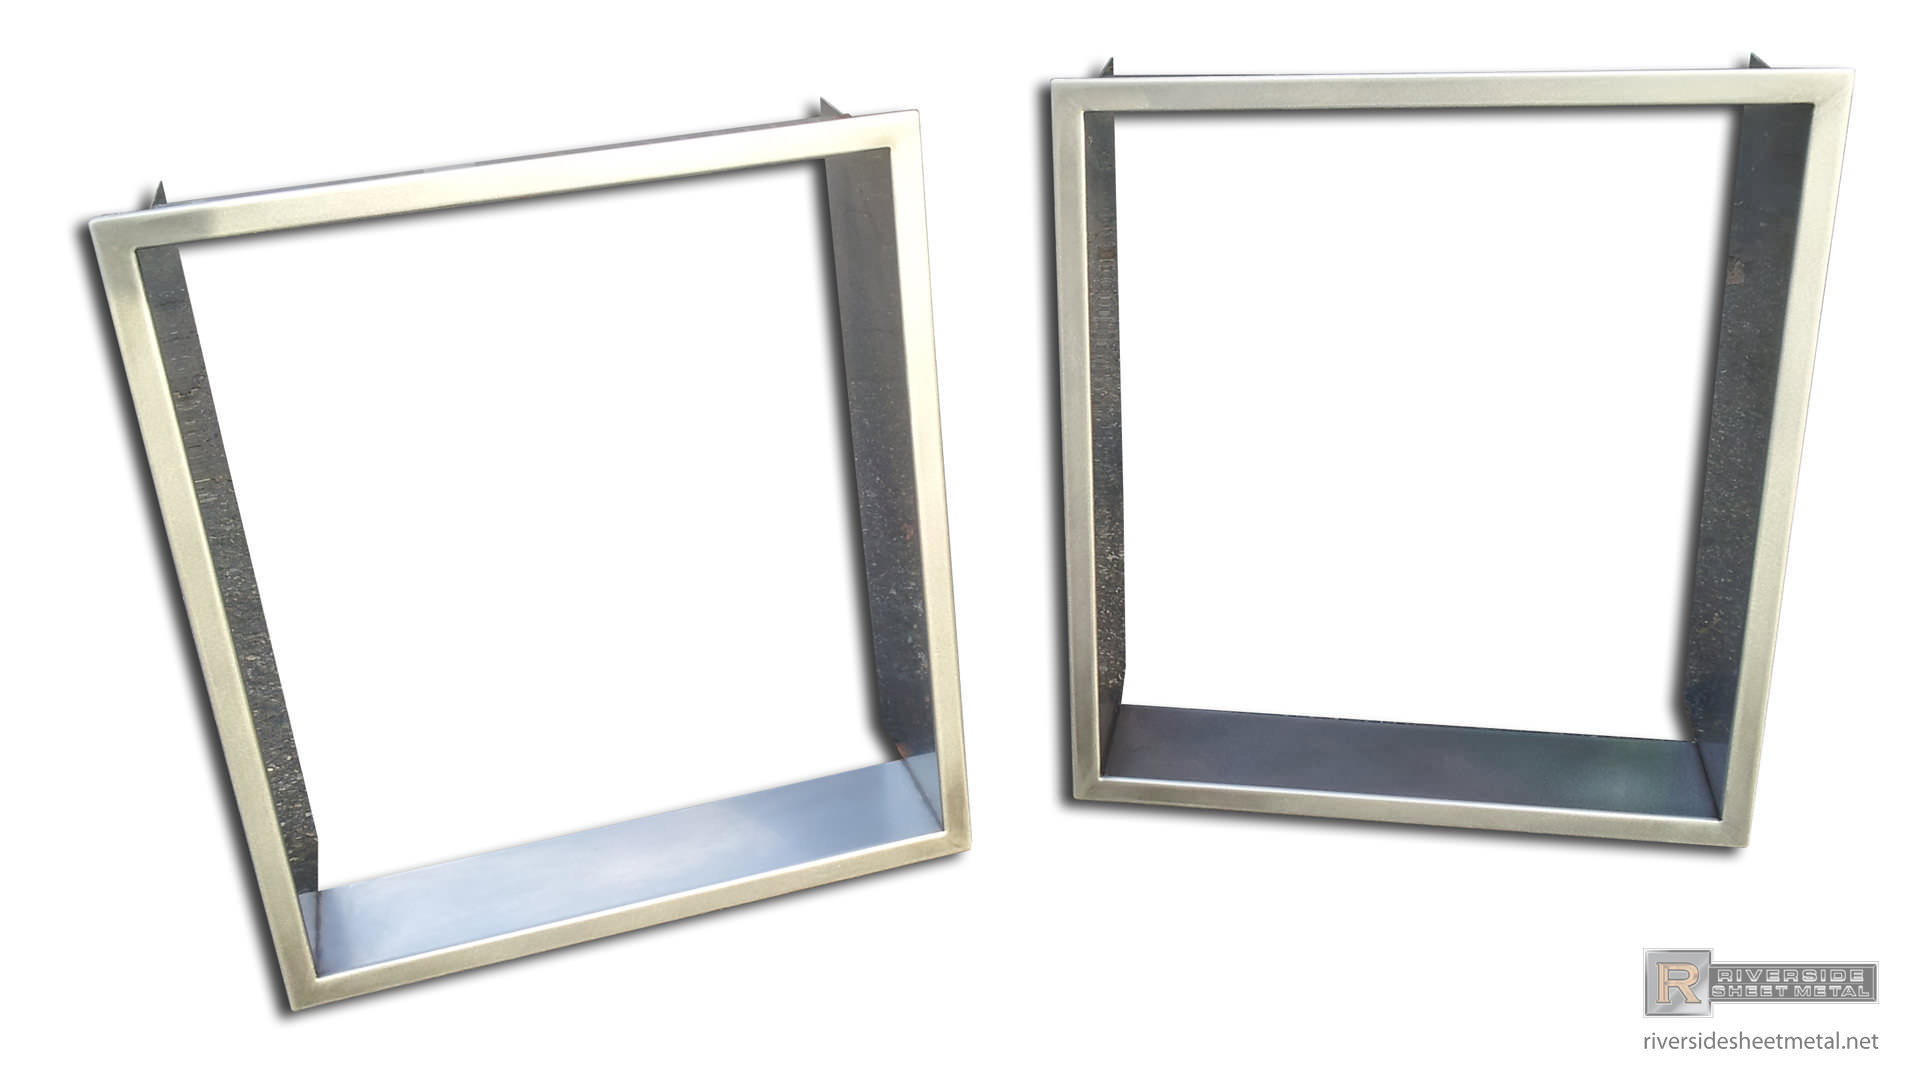 Stainless Steel Machine Picture Frames Riverside